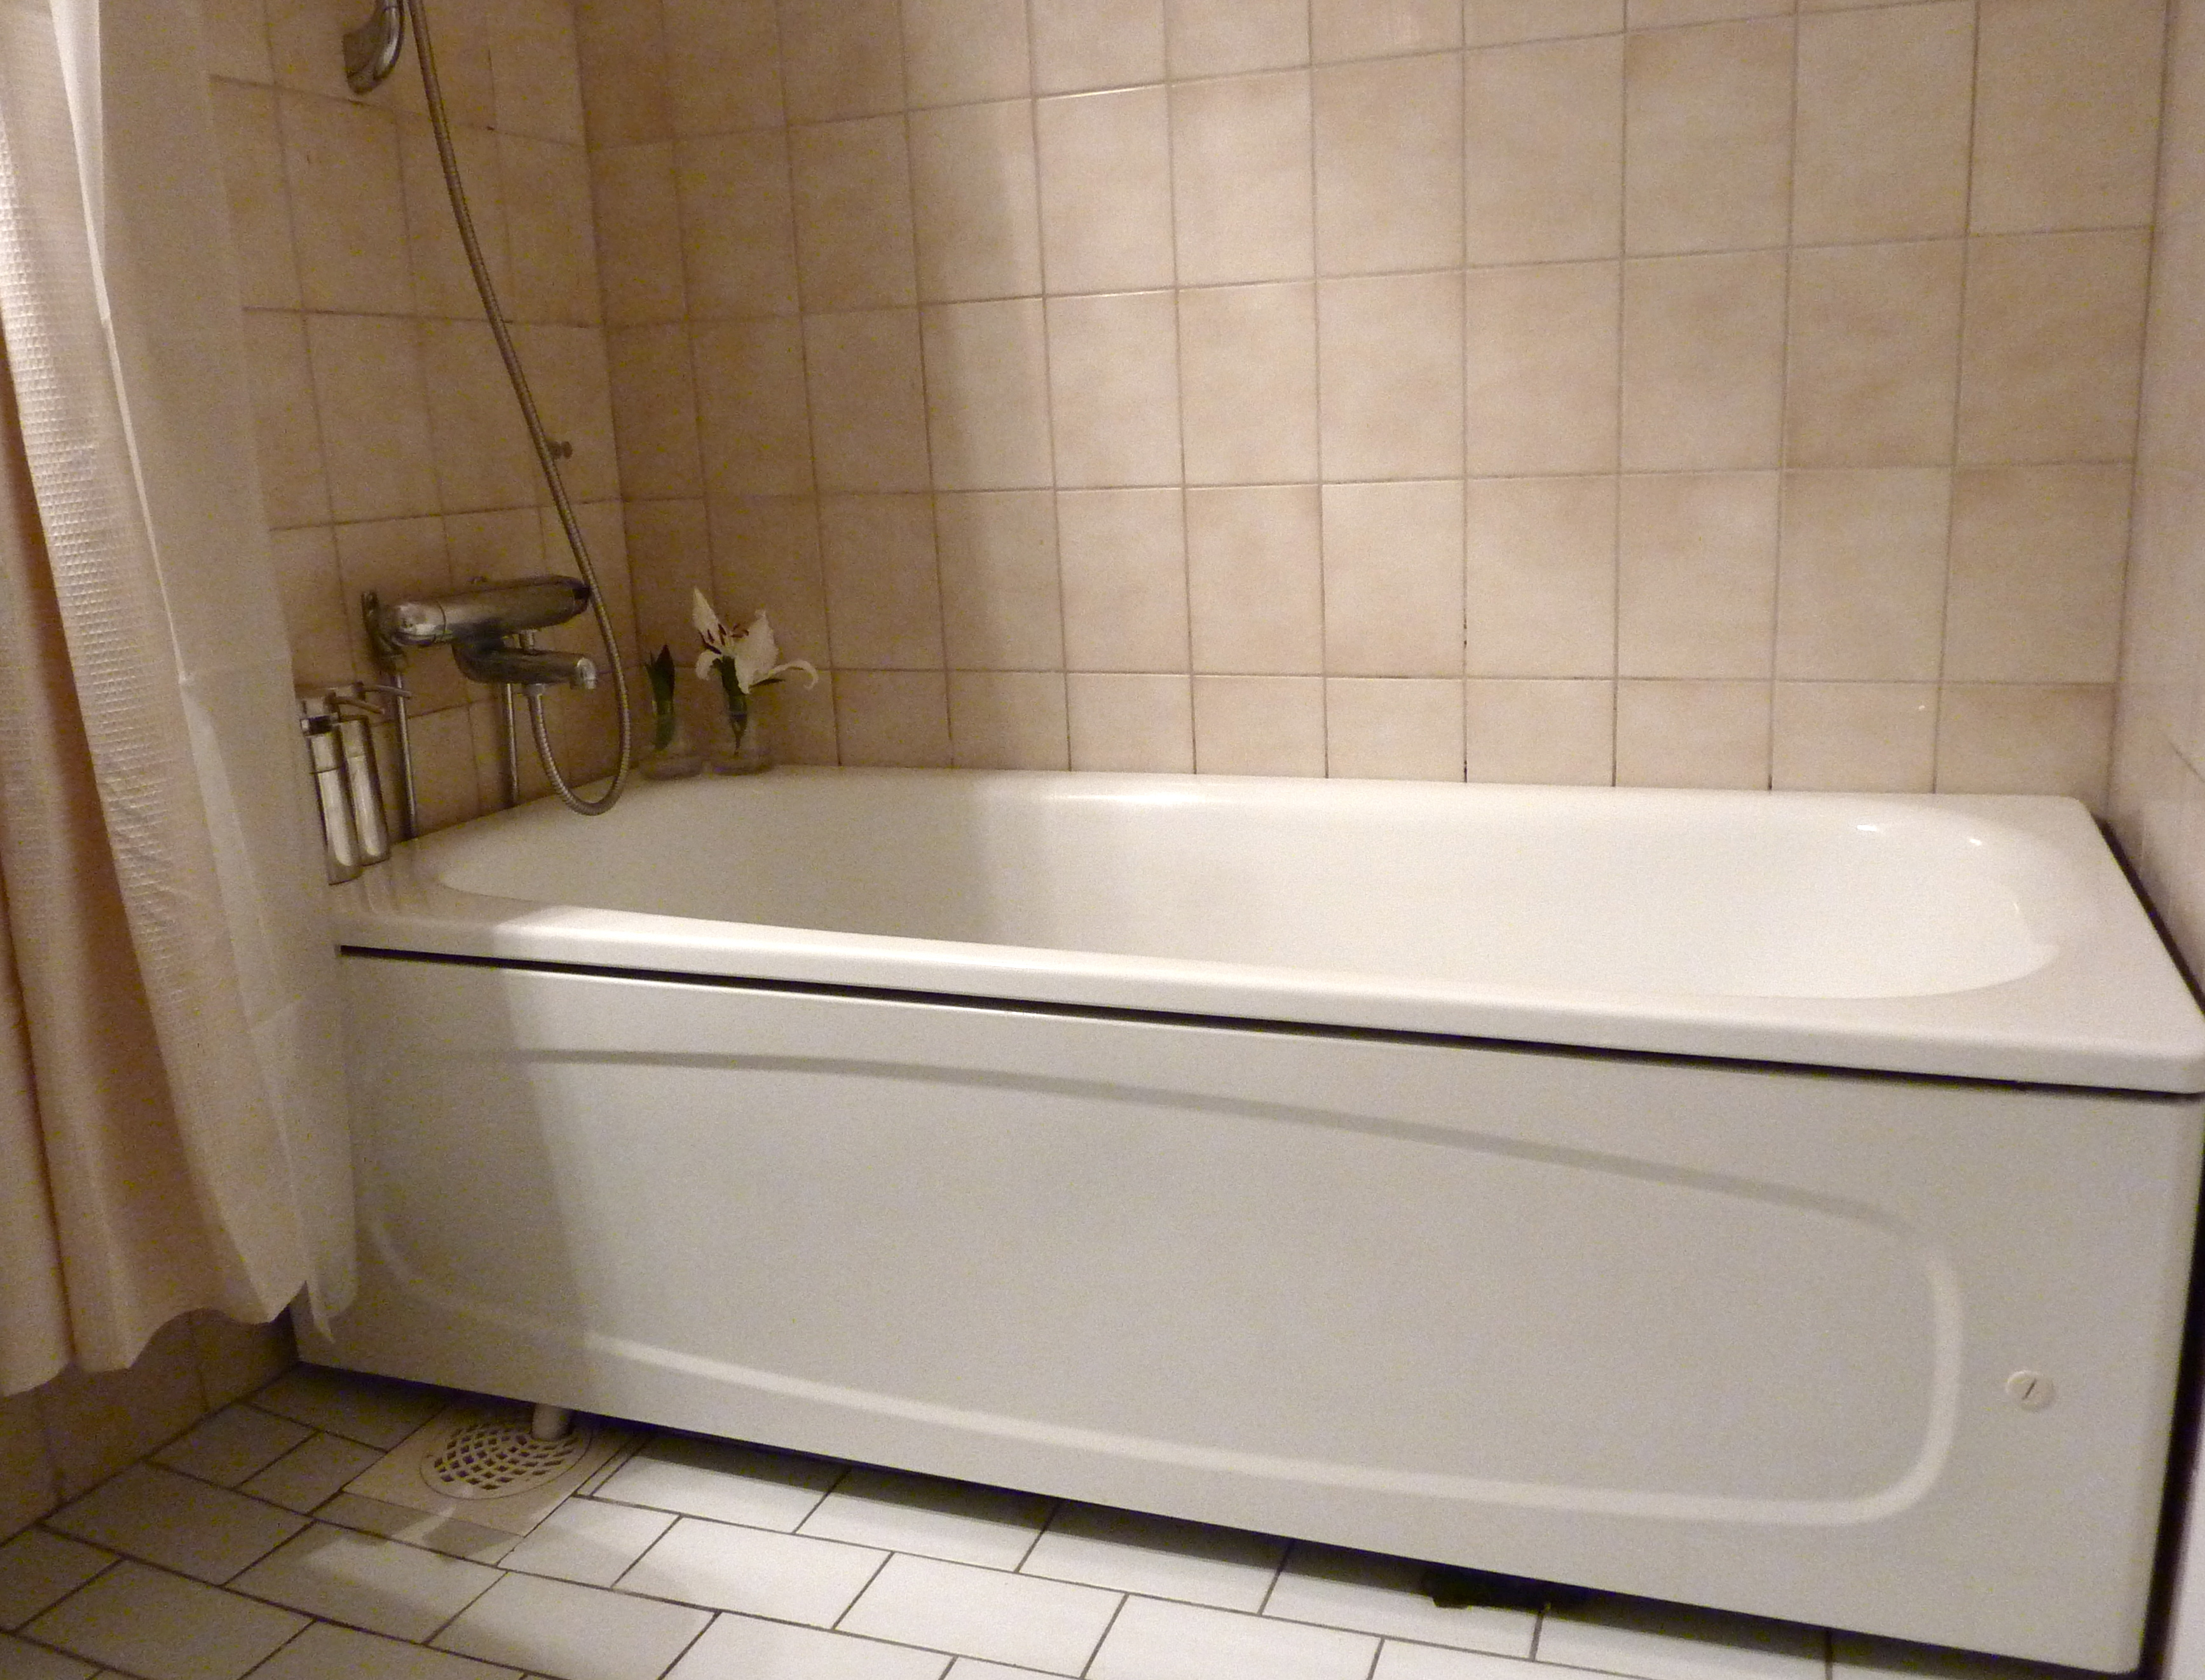 Ikea Front Make A Bath Tub Front Panel From Ikeas Gorm A 8 Step Tutorial